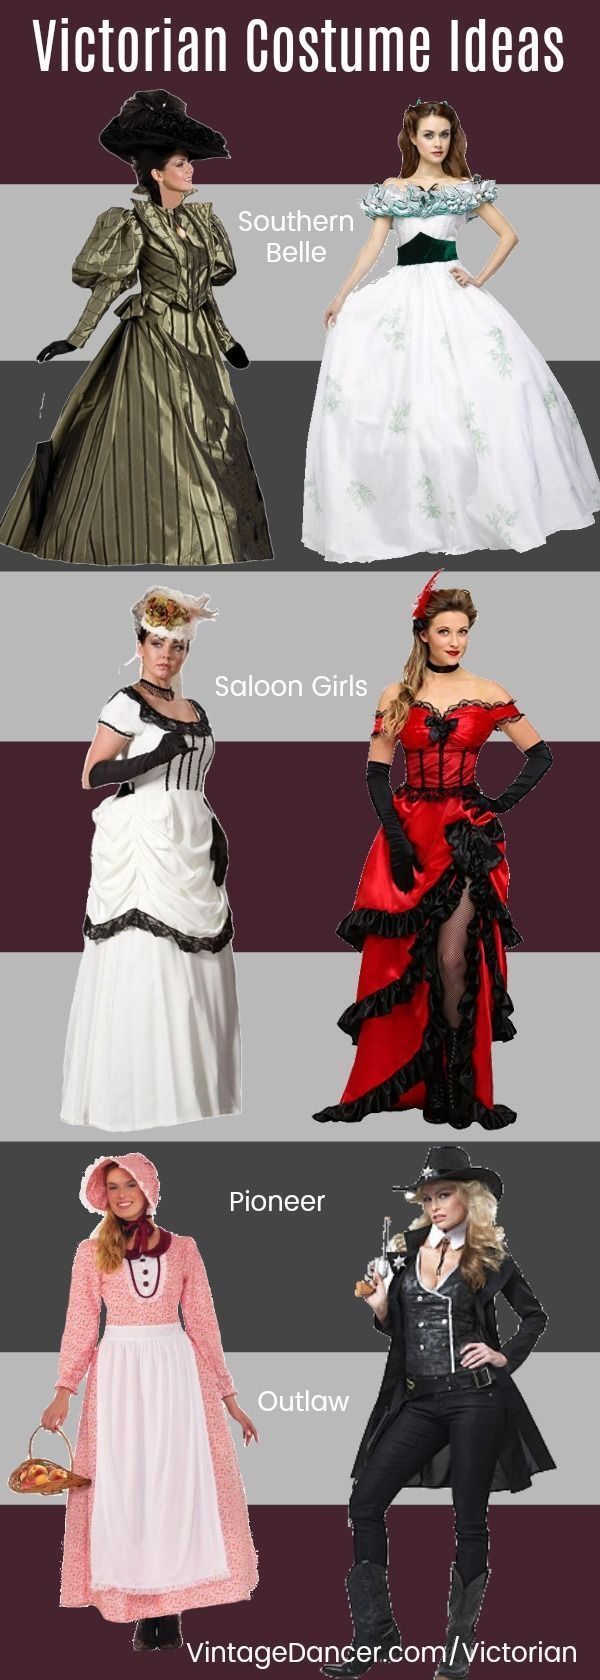 Victorian Dresses #dressesfromthesouthernbelleera Classic Victorian costumes - Civil War, Southern Belle, Bustle era, Saloon girl, Pioneer, Wild West gunslinger and more #dressesfromthesouthernbelleera